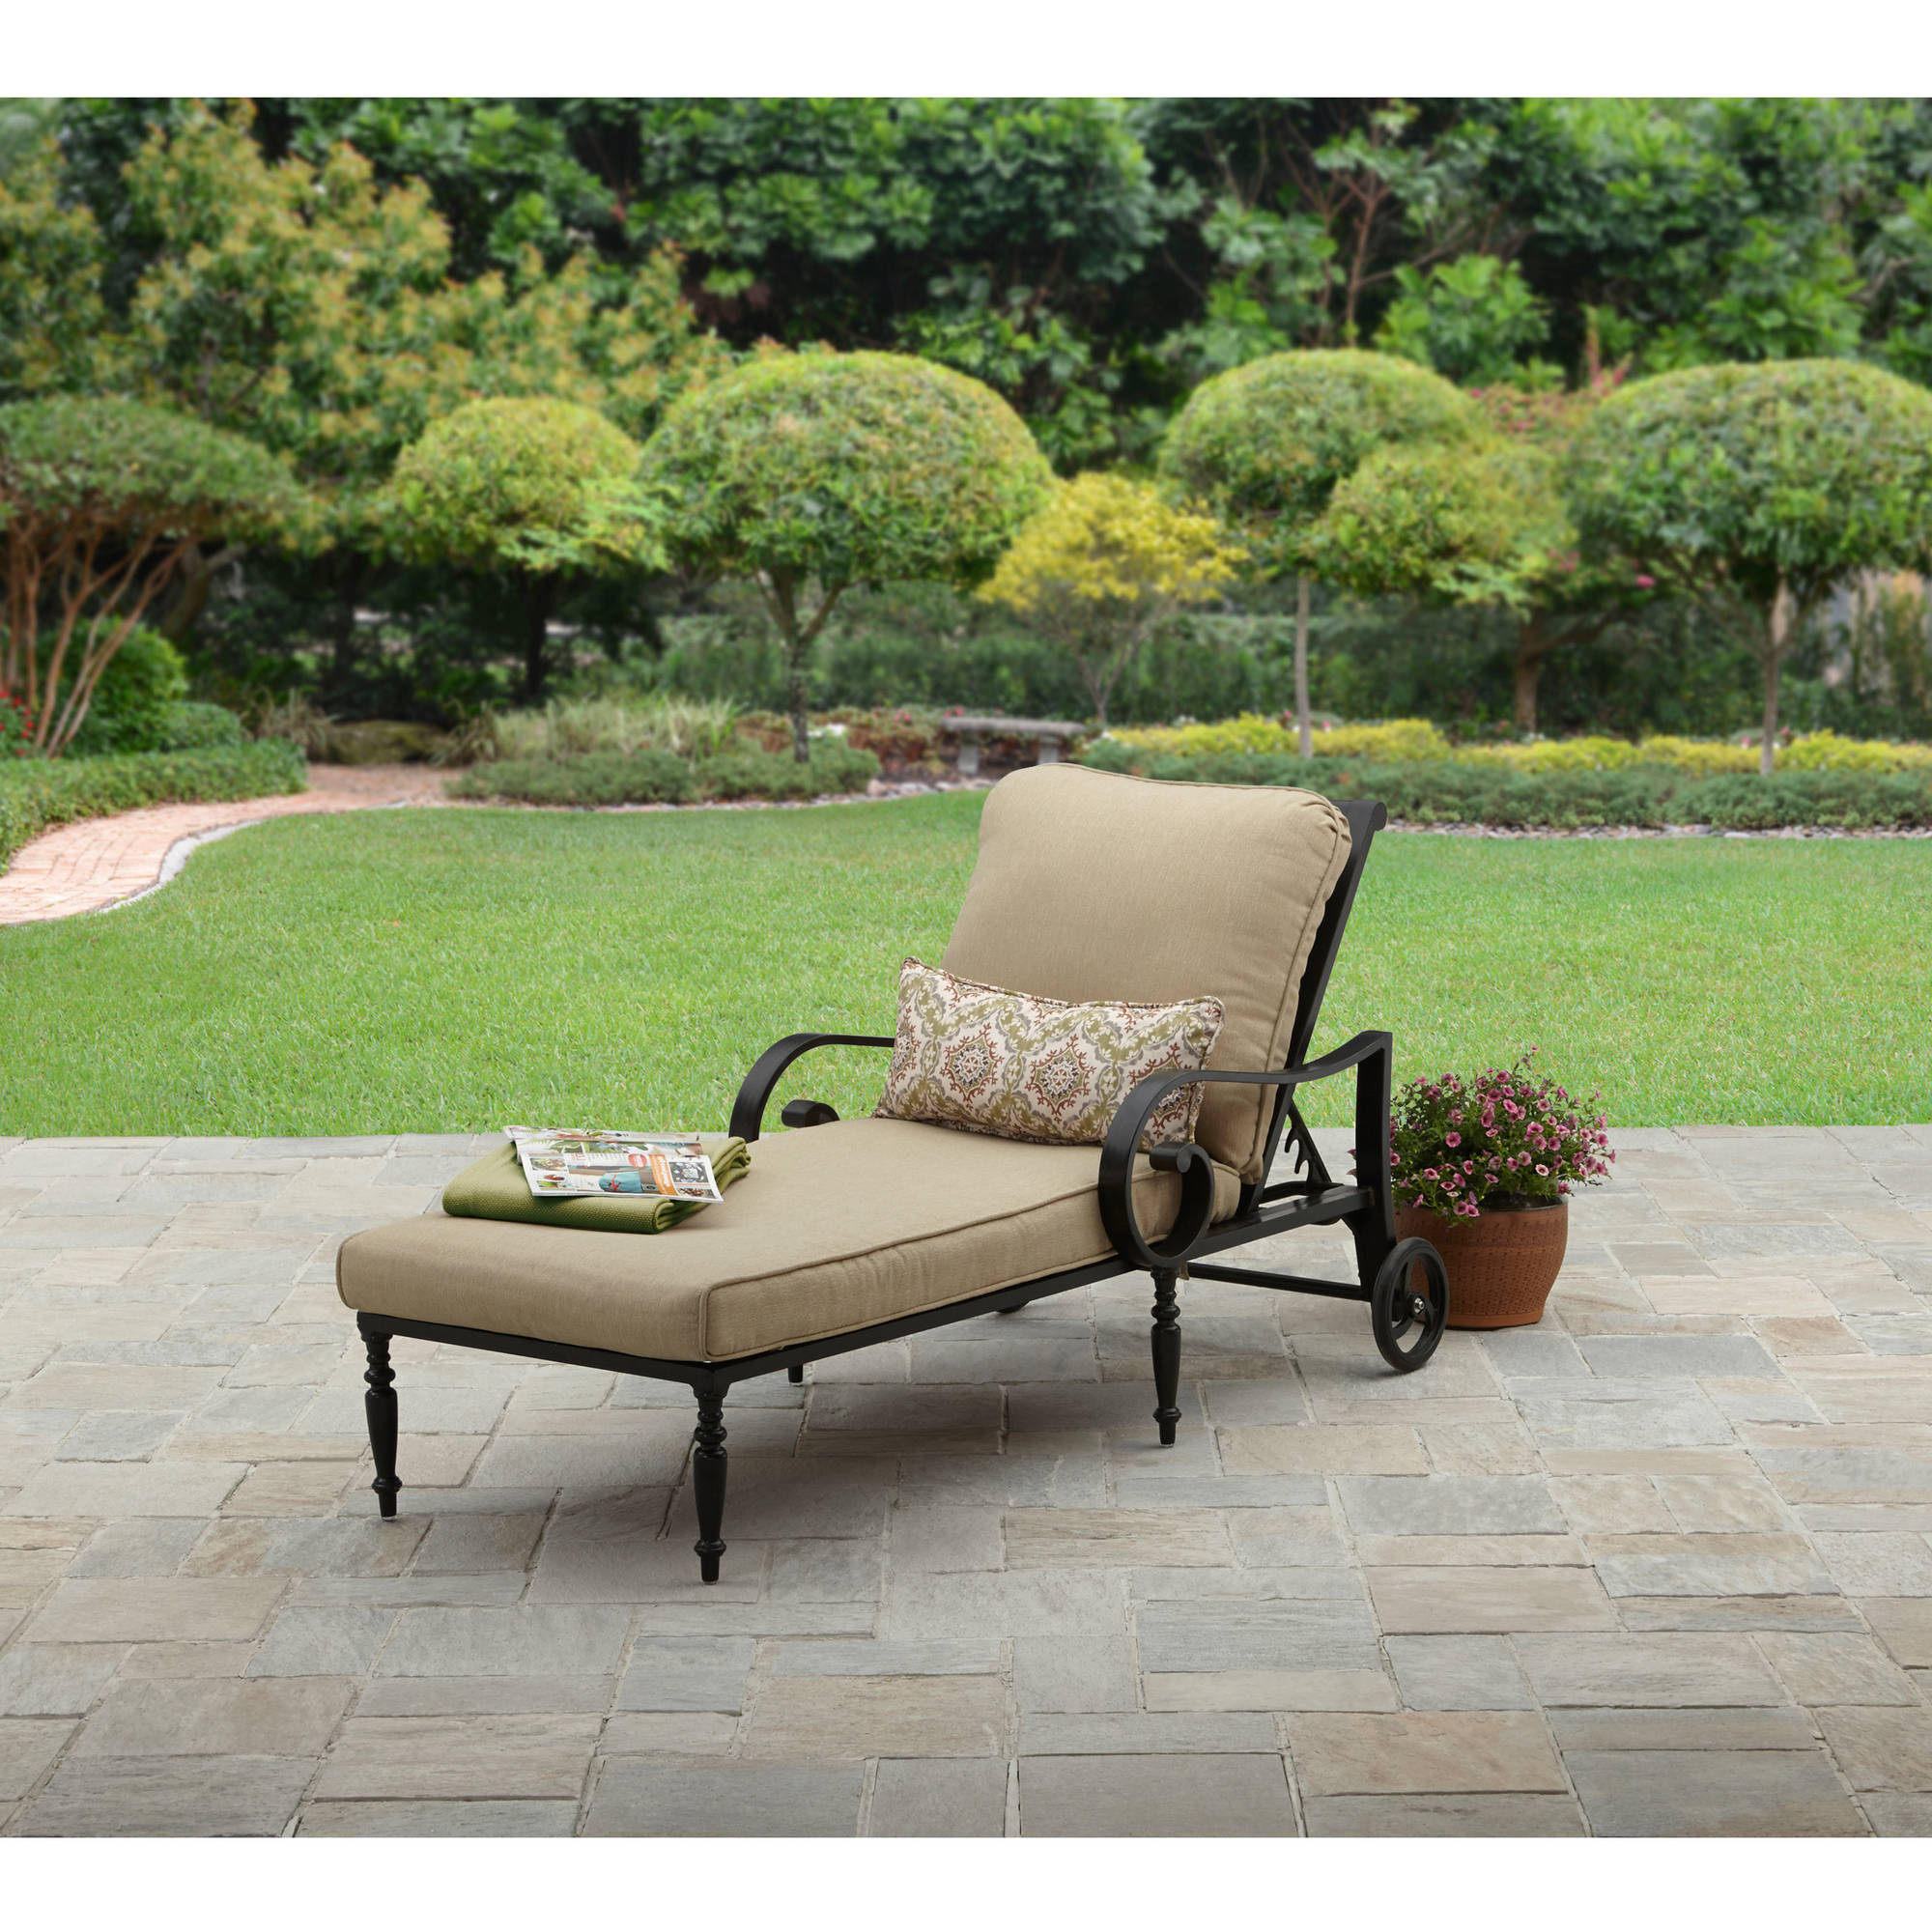 Better Homes & Gardens Englewood Heights Ii Aluminum Outdoor Chaise Lounge  – Walmart Throughout Favorite Outdoor Aluminum Chaise Lounges (View 3 of 25)